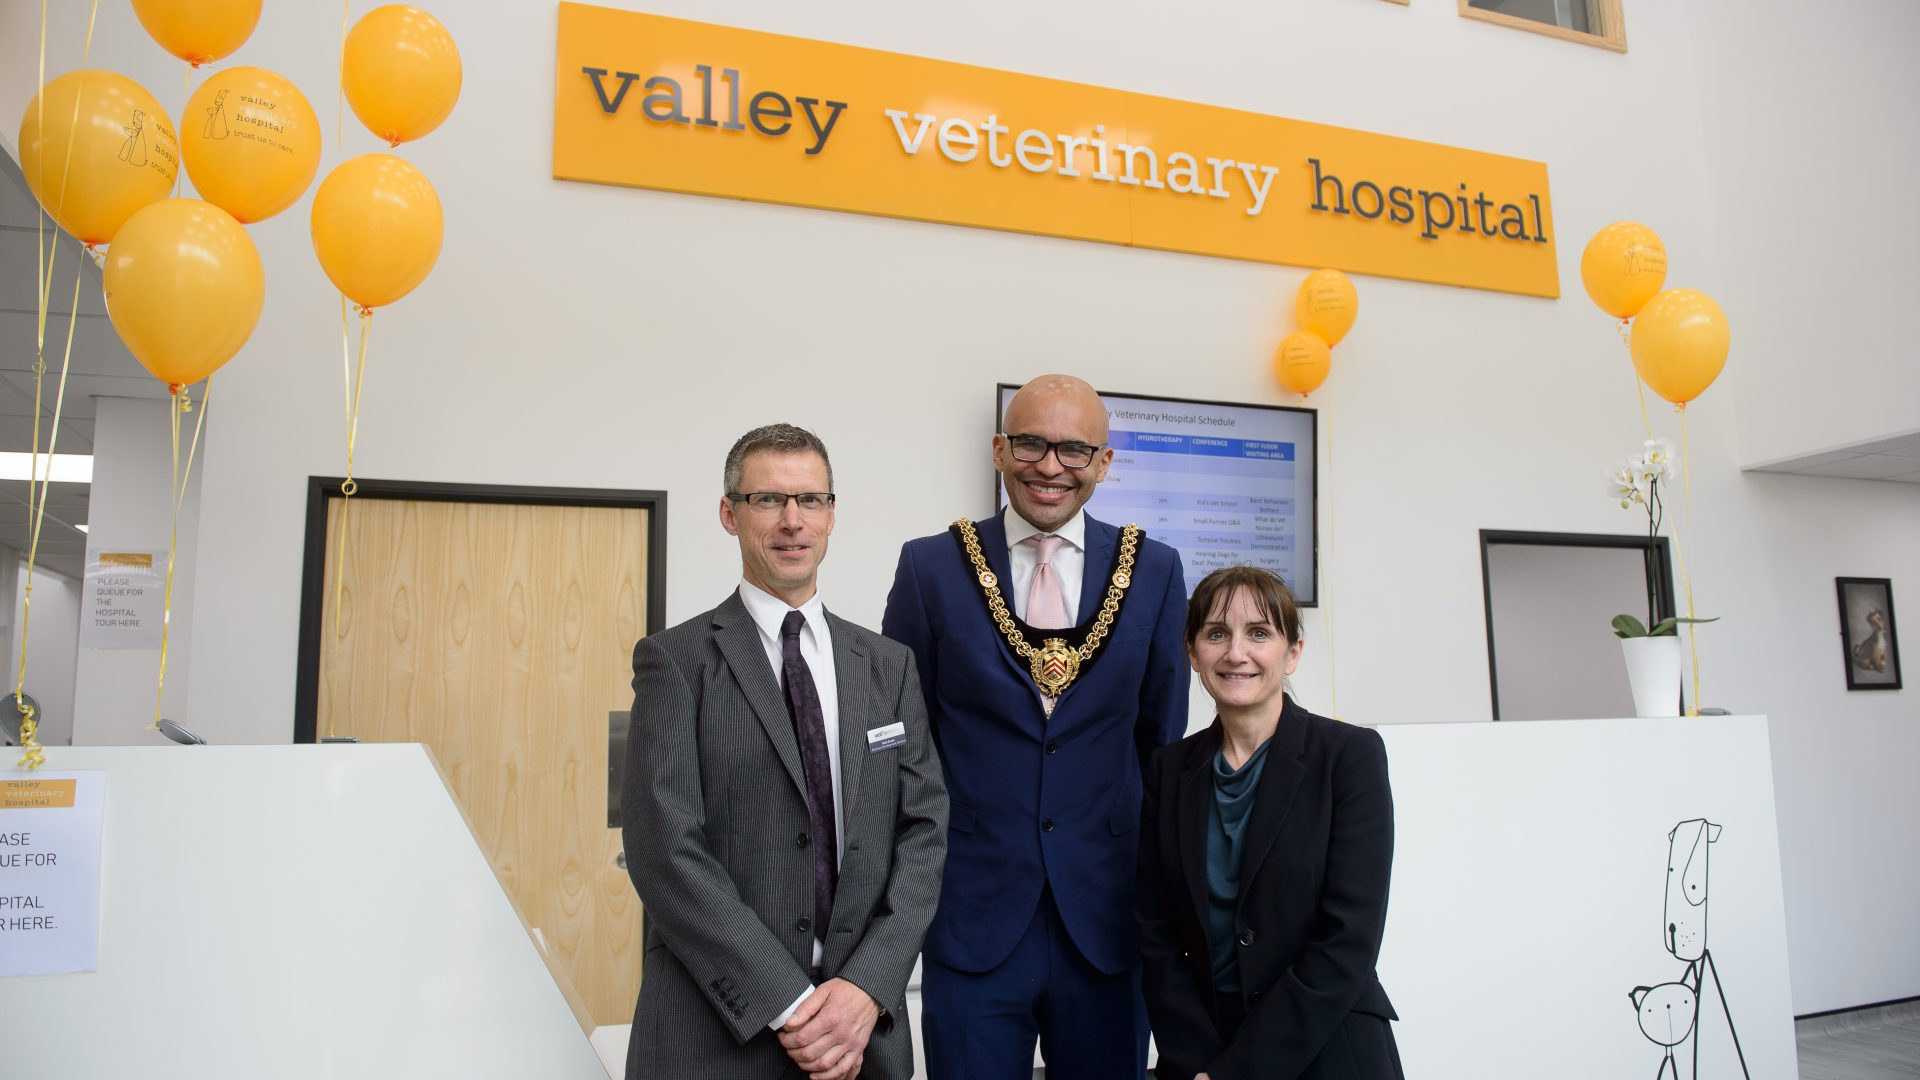 New £2 million Valley Veterinary Hospital opens in Cardiff